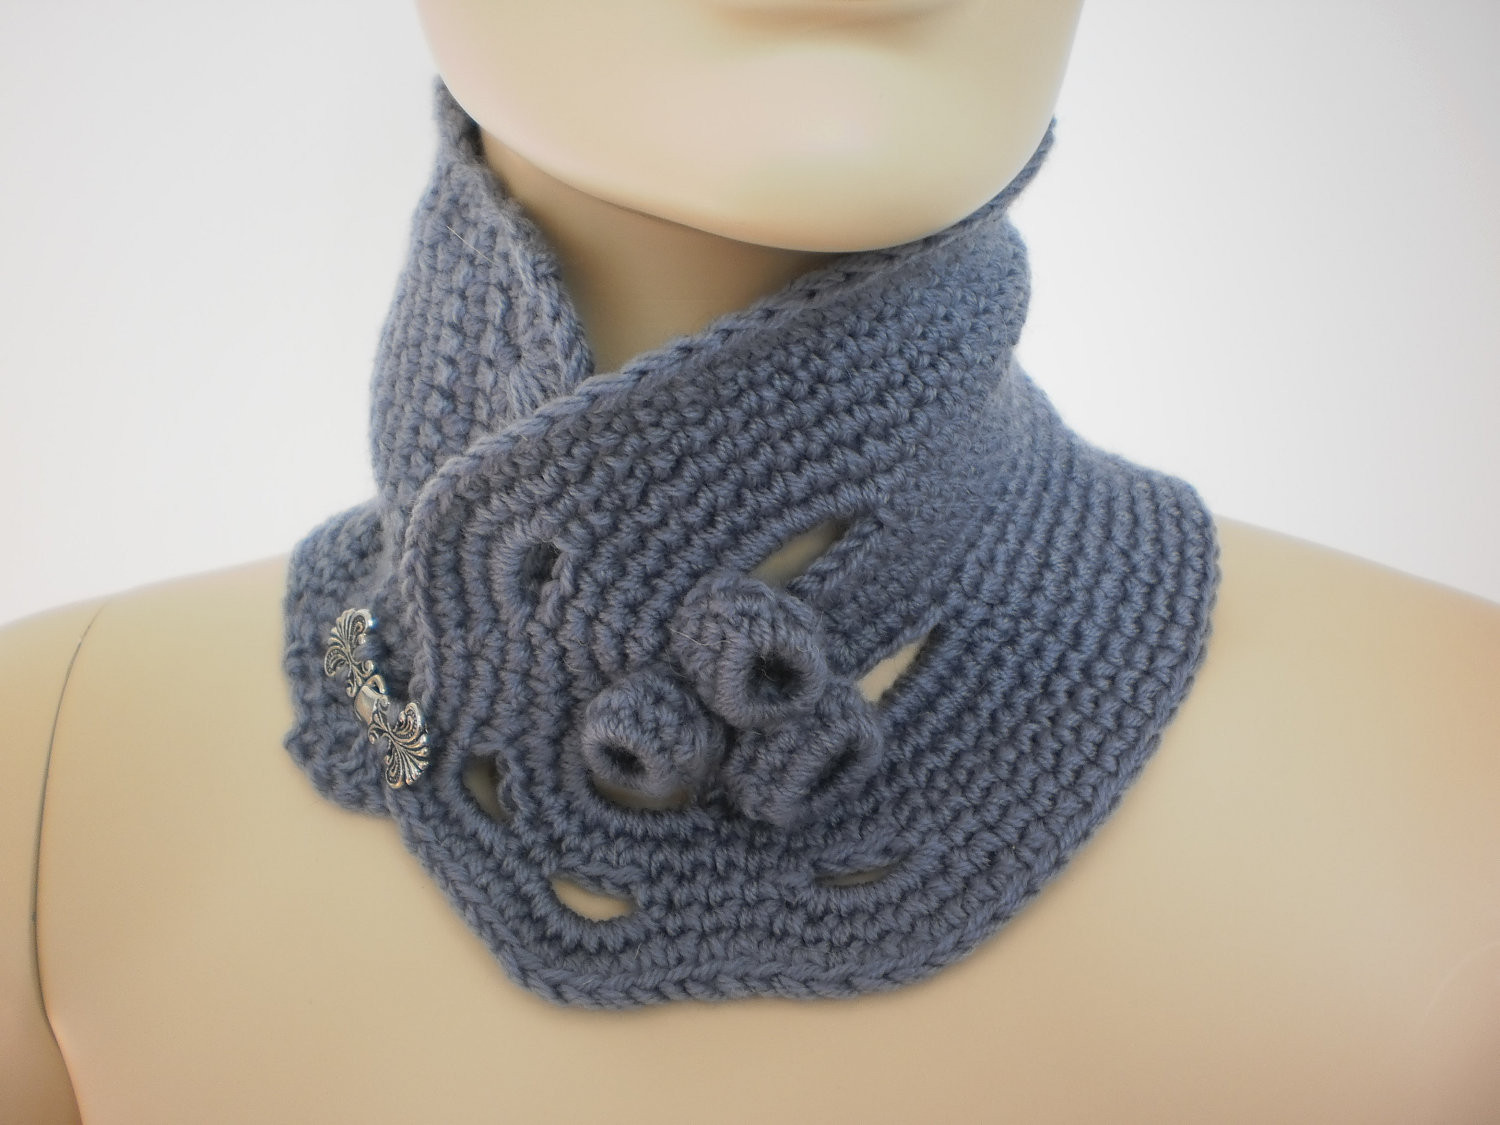 Crochet Neck Scarf Inspirational 16 Bufandas De Crochet Y Dos Agujas Para Mujer Of Great 50 Ideas Crochet Neck Scarf